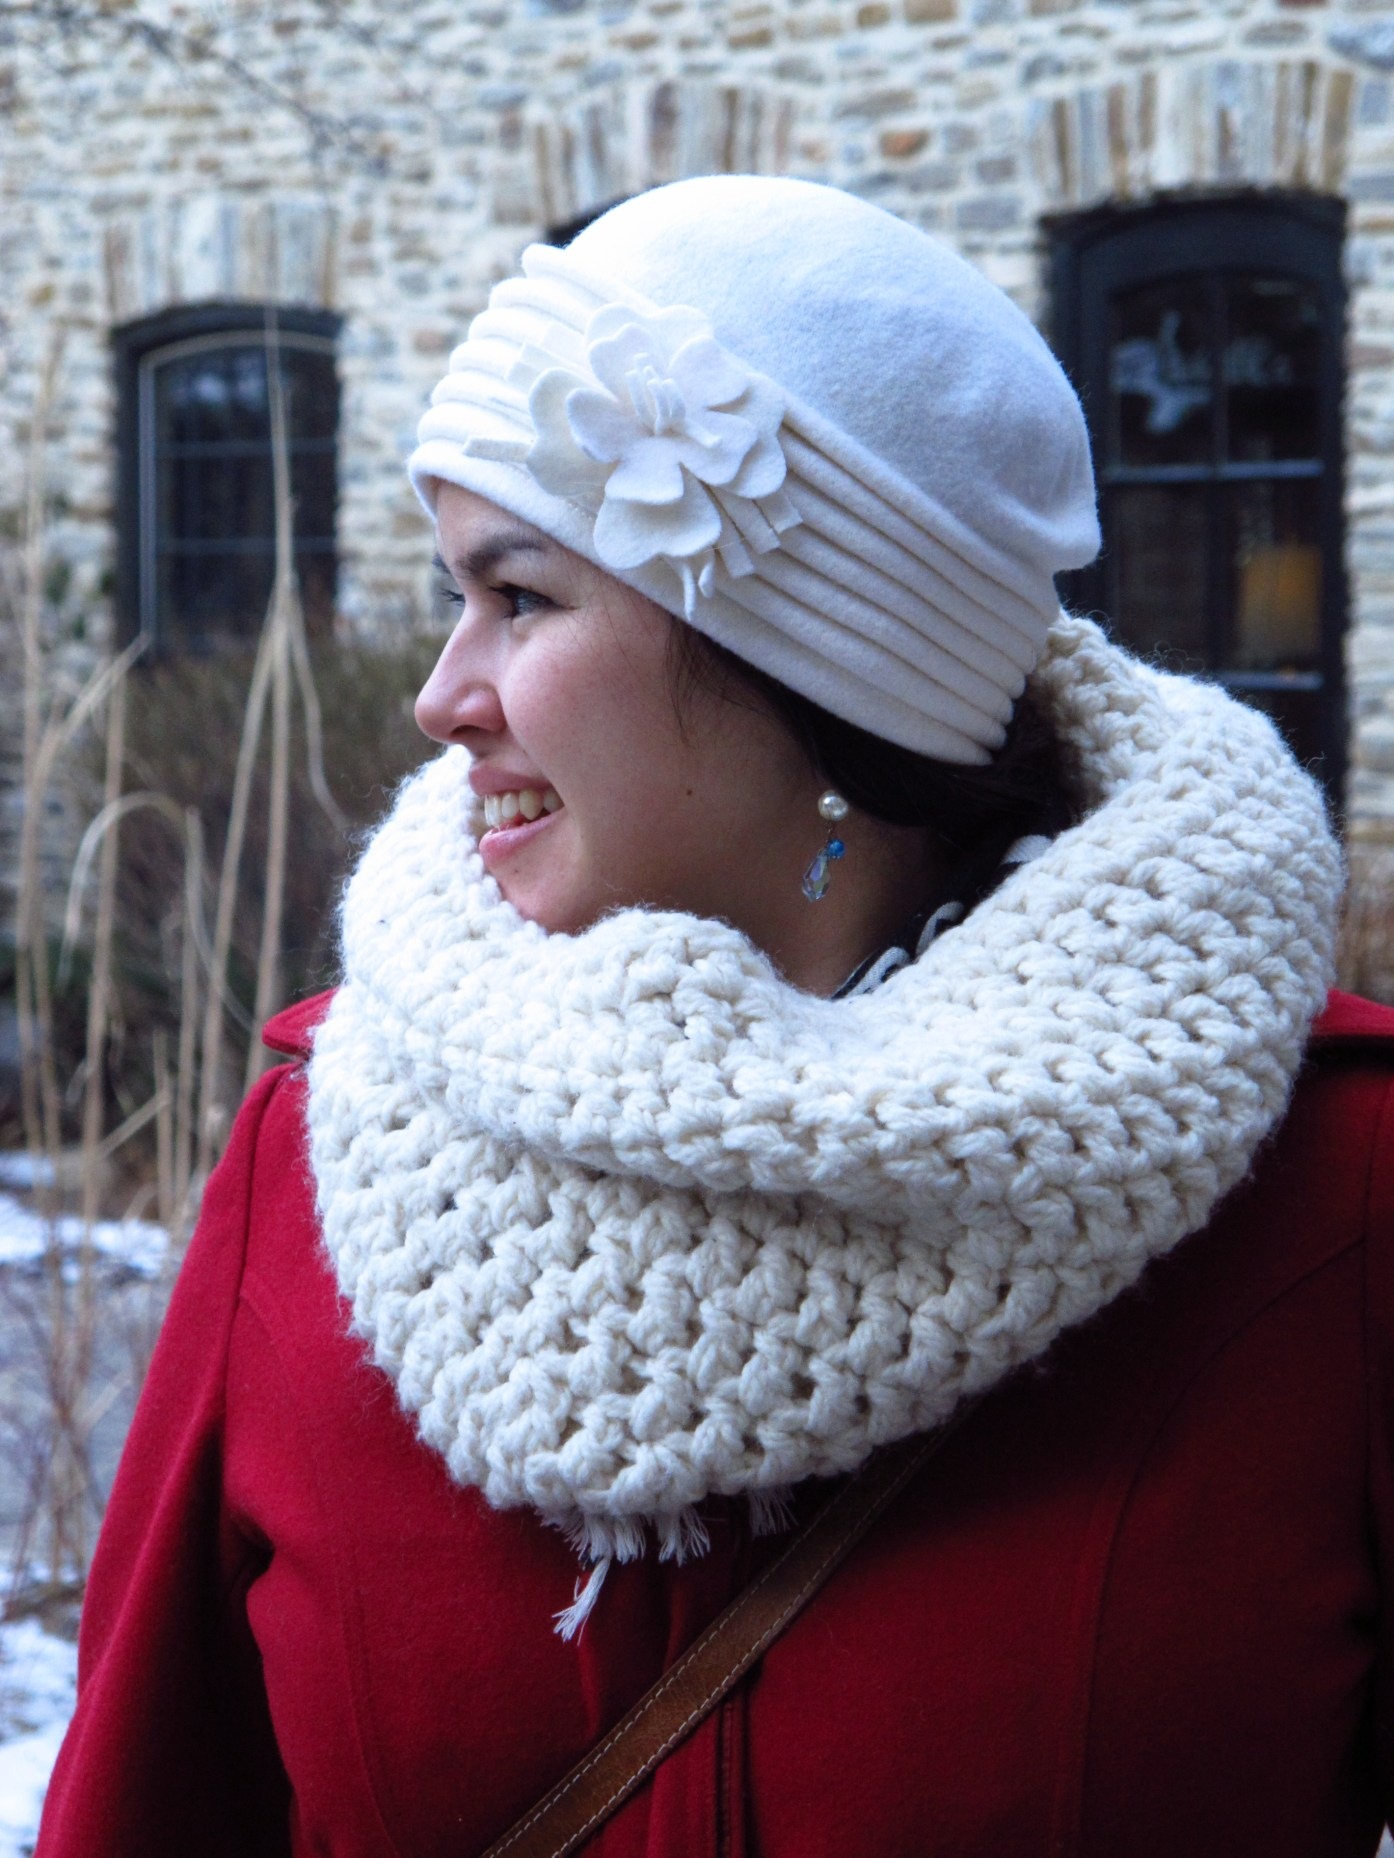 Giant Snowball Crocheted Winter White Cowl   Amazing Gift Ideas to Make Out Of Your Sheep's Wool